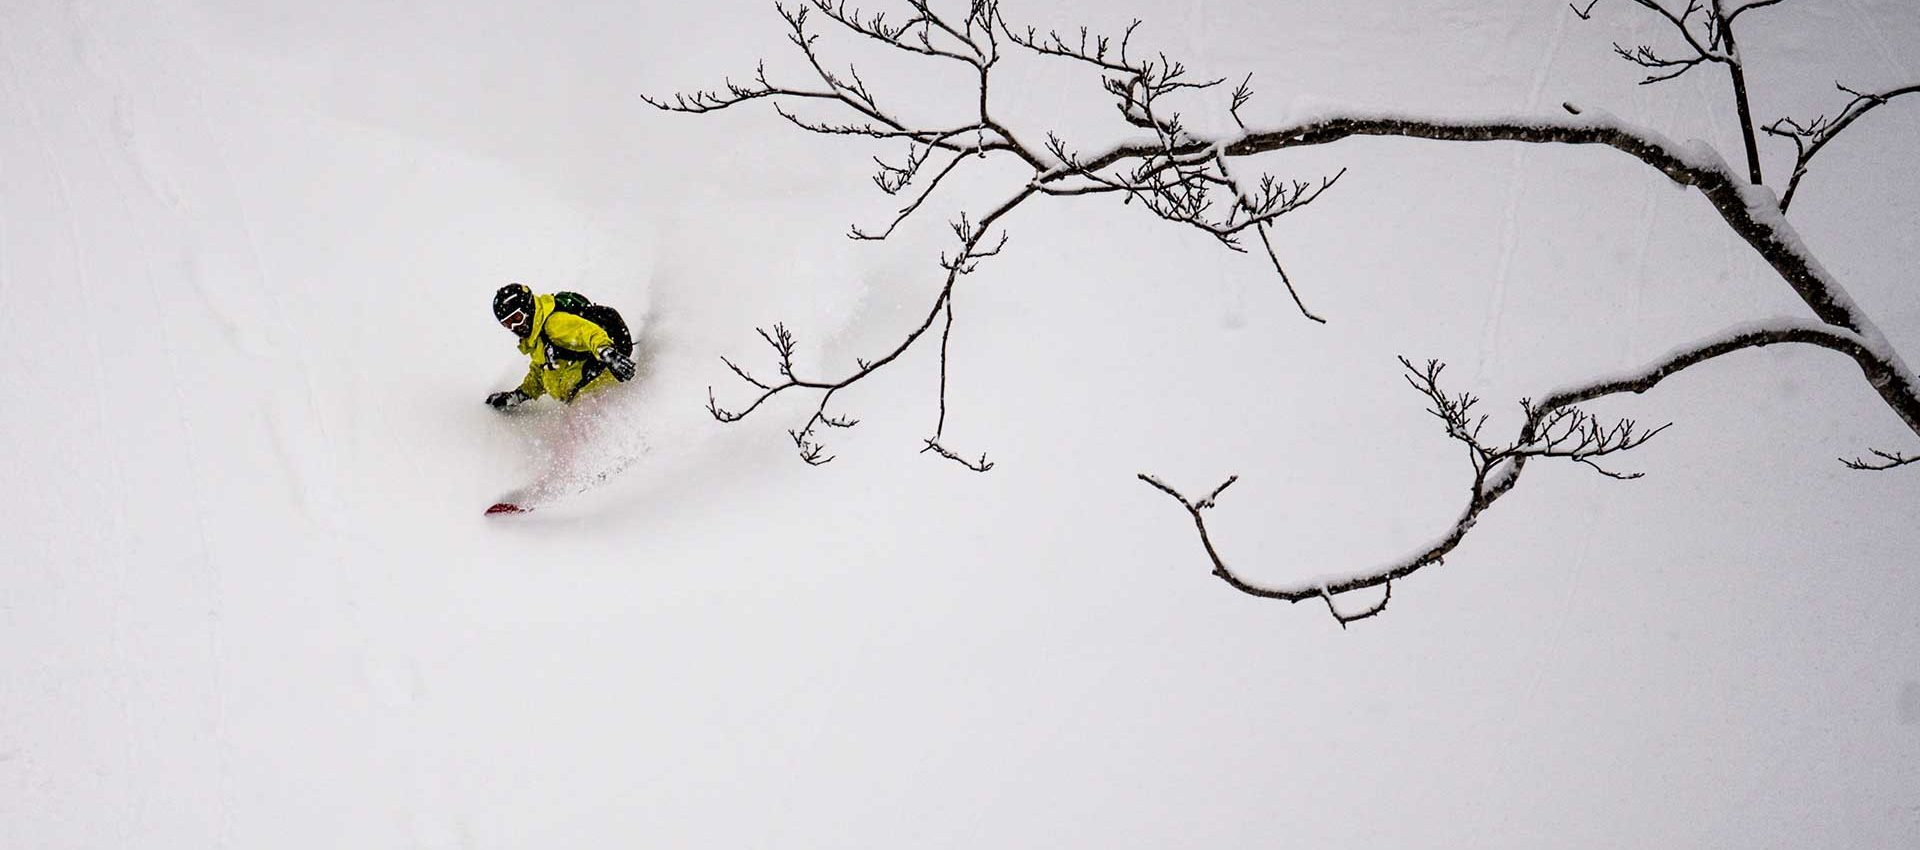 Just glide in the powder snow and make every turn look perfect.